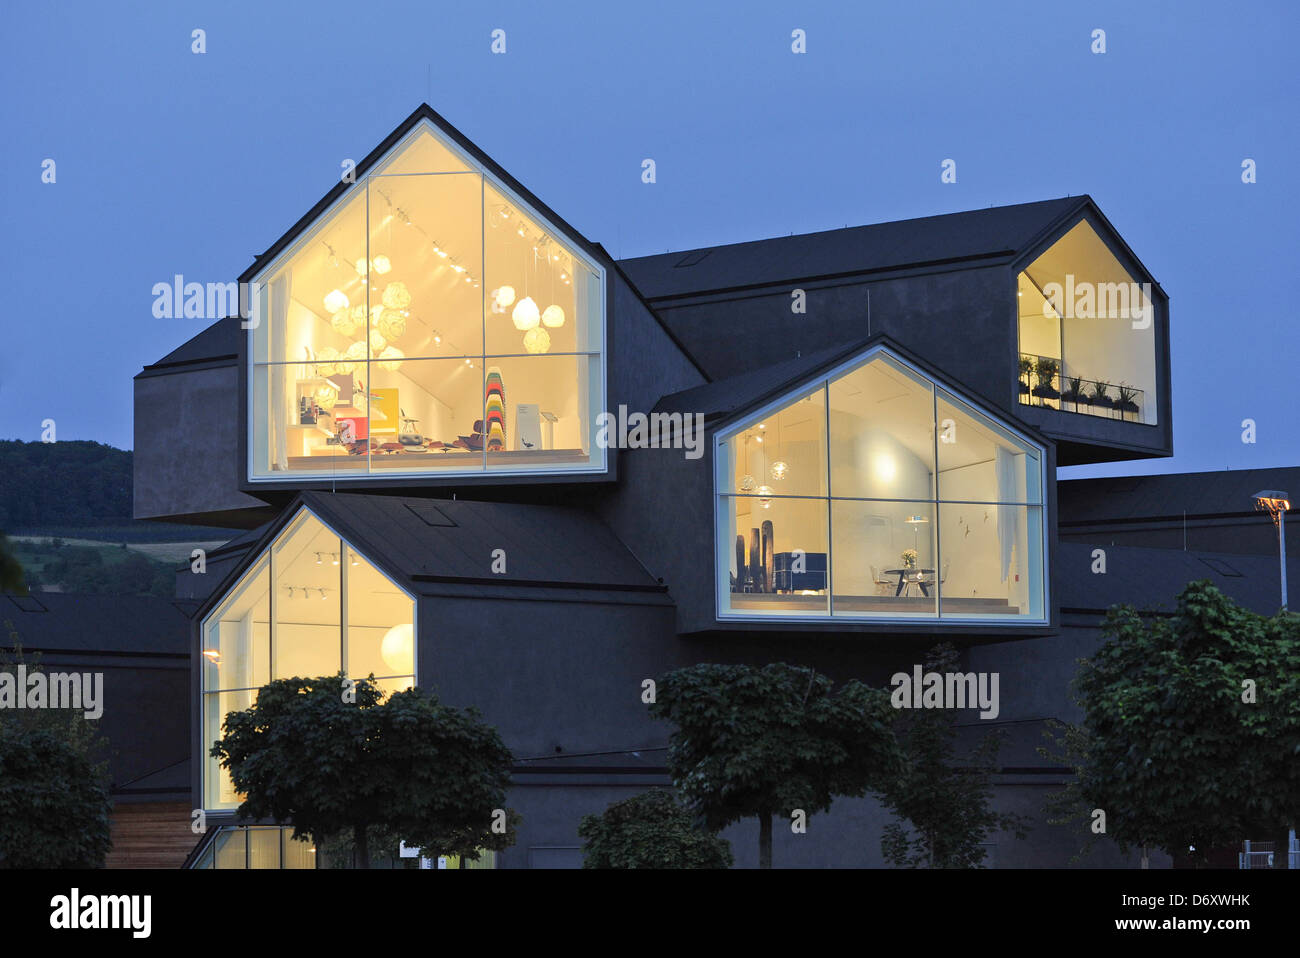 weil am rhein germany the vitra house built by herzog de meuron stock photo 55909887 alamy. Black Bedroom Furniture Sets. Home Design Ideas